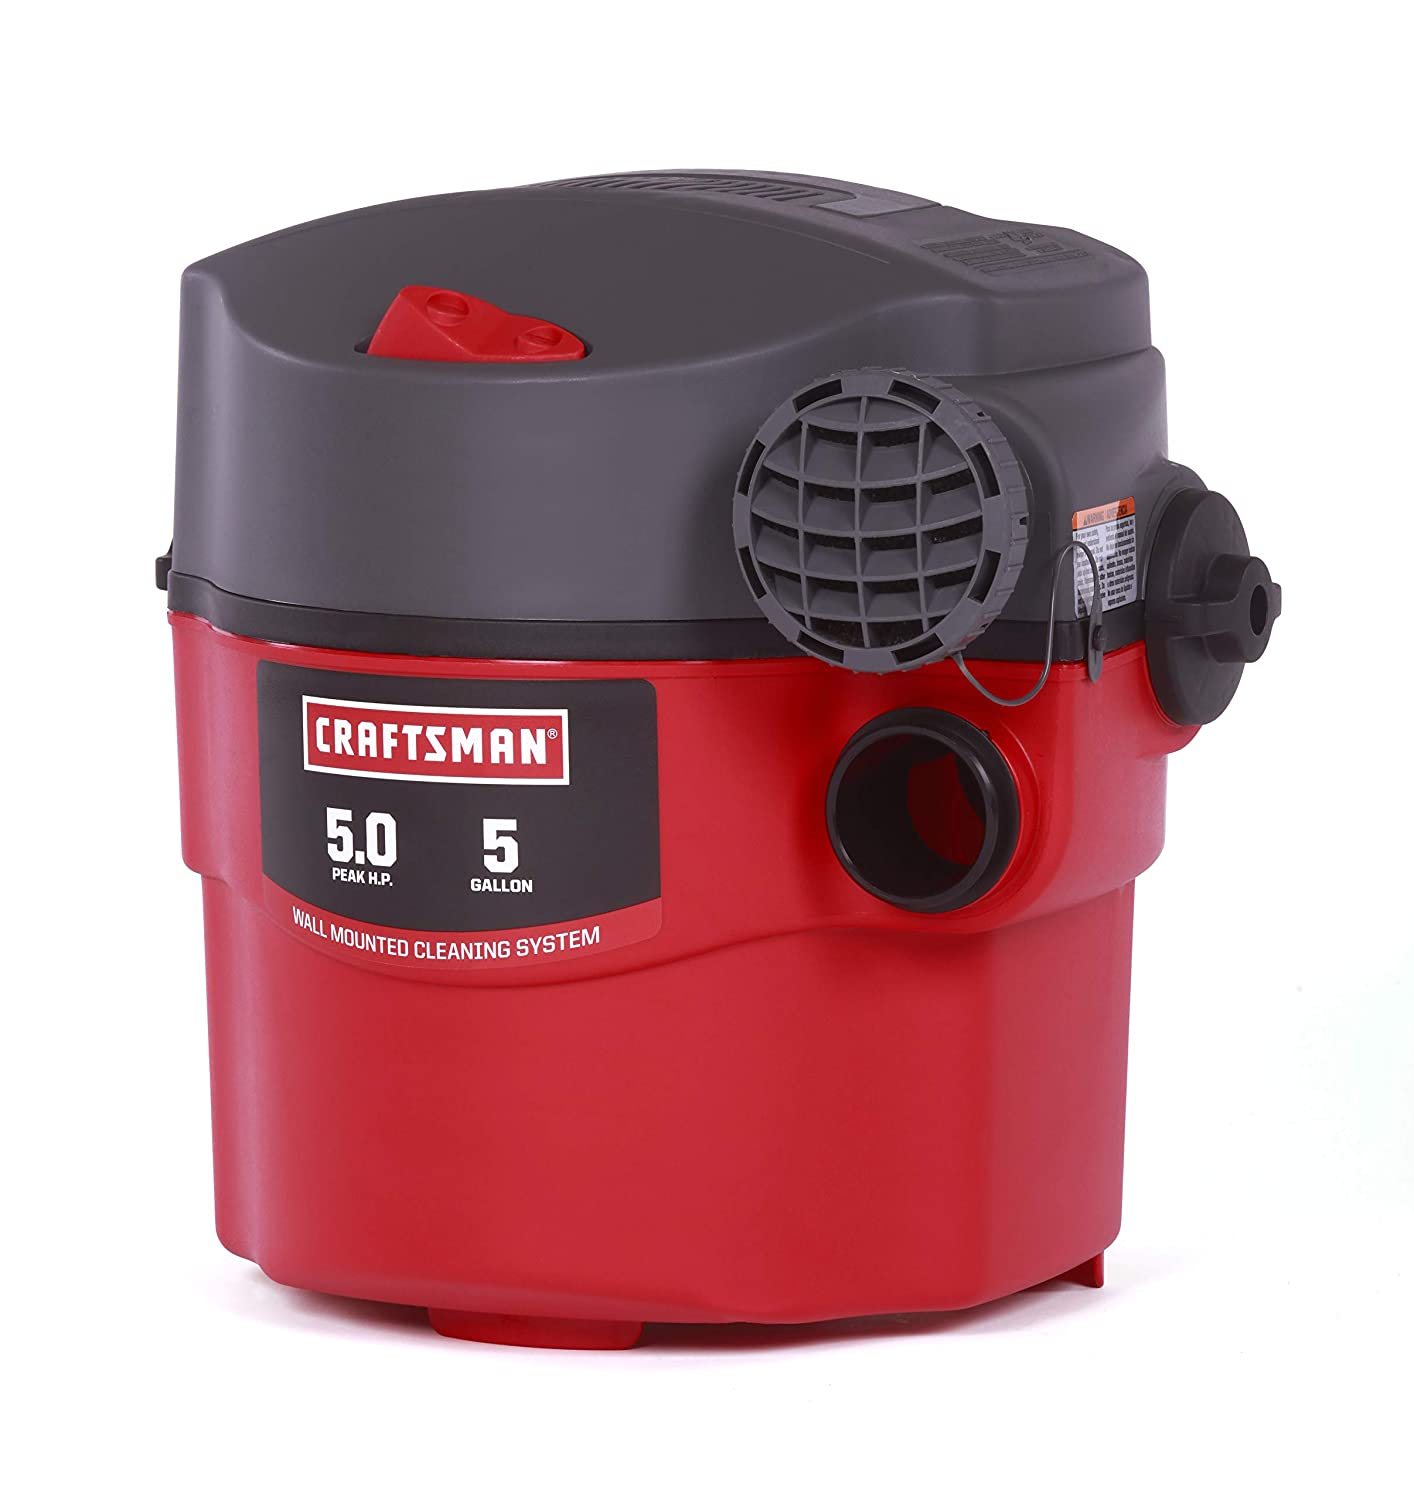 CRAFTSMAN 17925 5 Gallon 5 Peak HP Wet/Dry Wall Vac, Wall-Mounted Shop Vacuum with Attachments